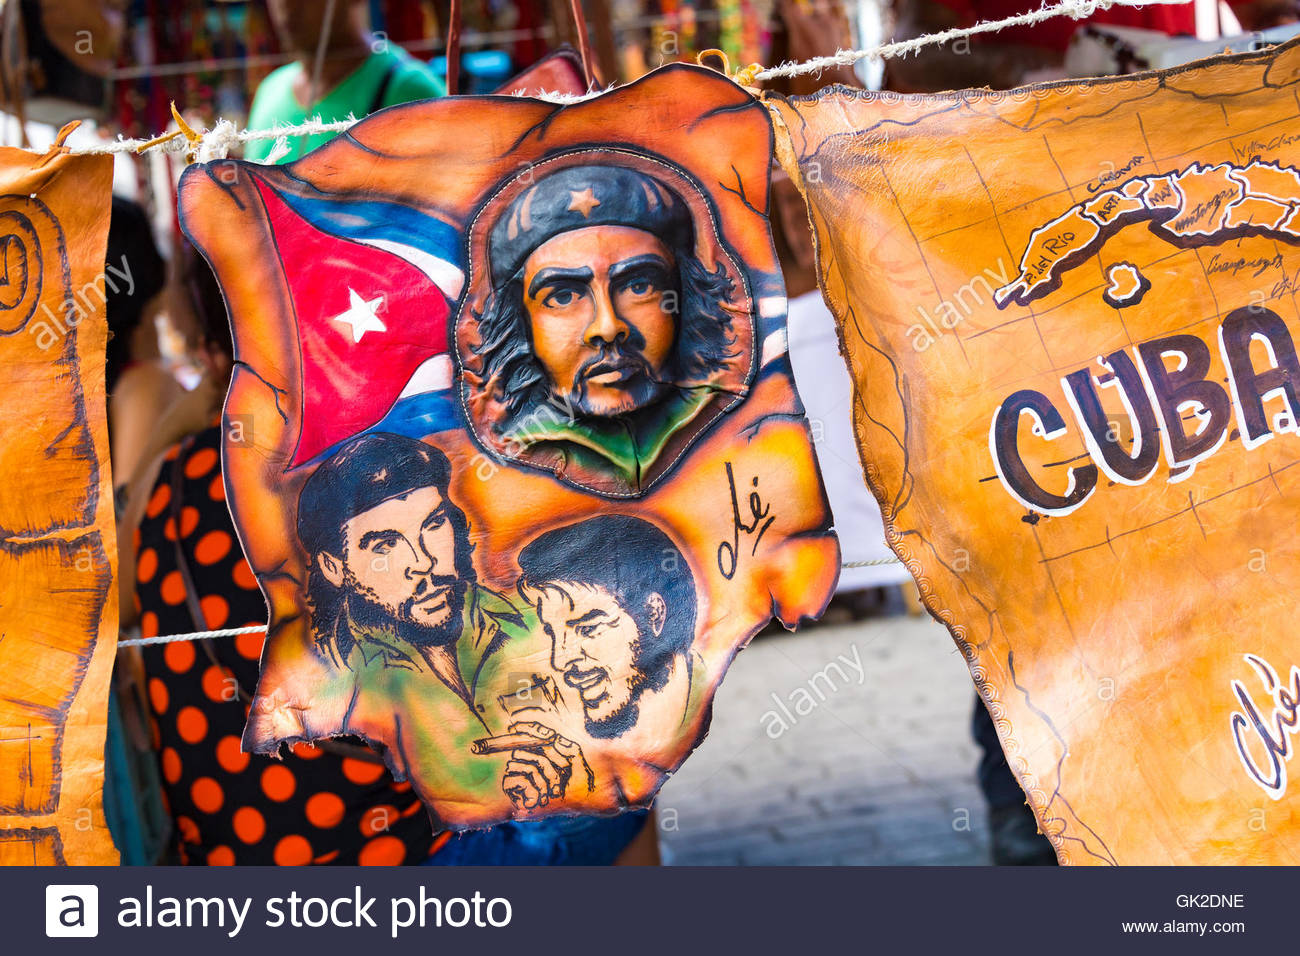 Cuba tourism: leather souvenirs stand. Che Guevara images. - Stock Image